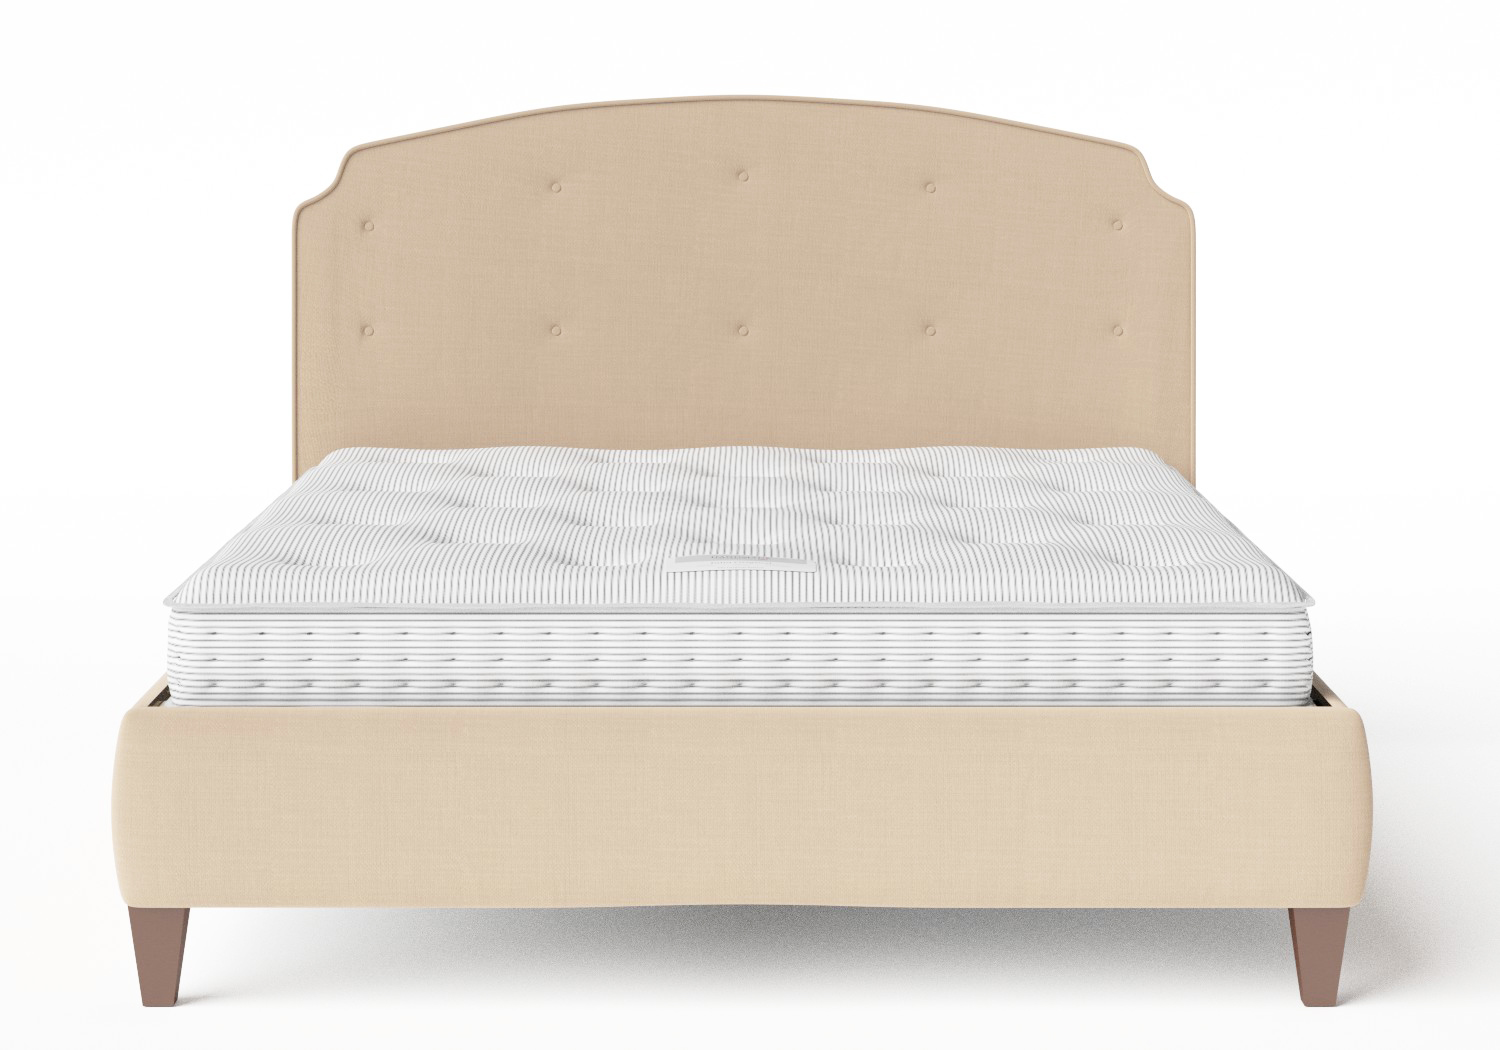 Lide Upholstered Bed in Natural fabric with buttoning shown with Juno 1 mattress